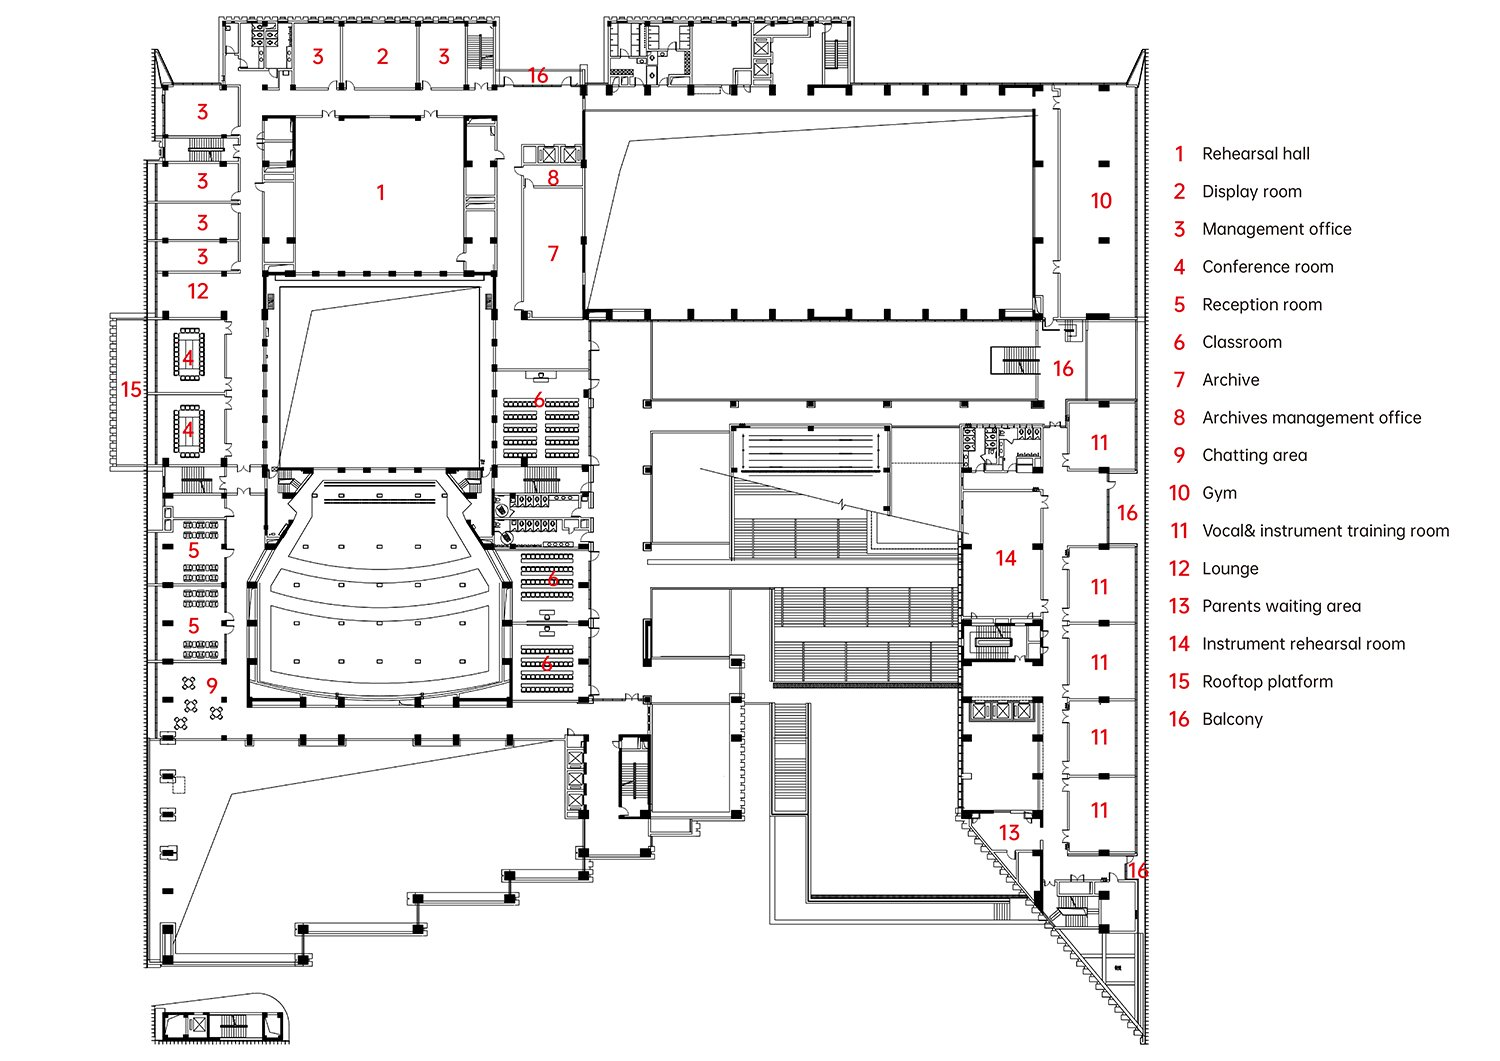 4th Floor Plan The Architectural Design & Research Institute of Zhejiang University}